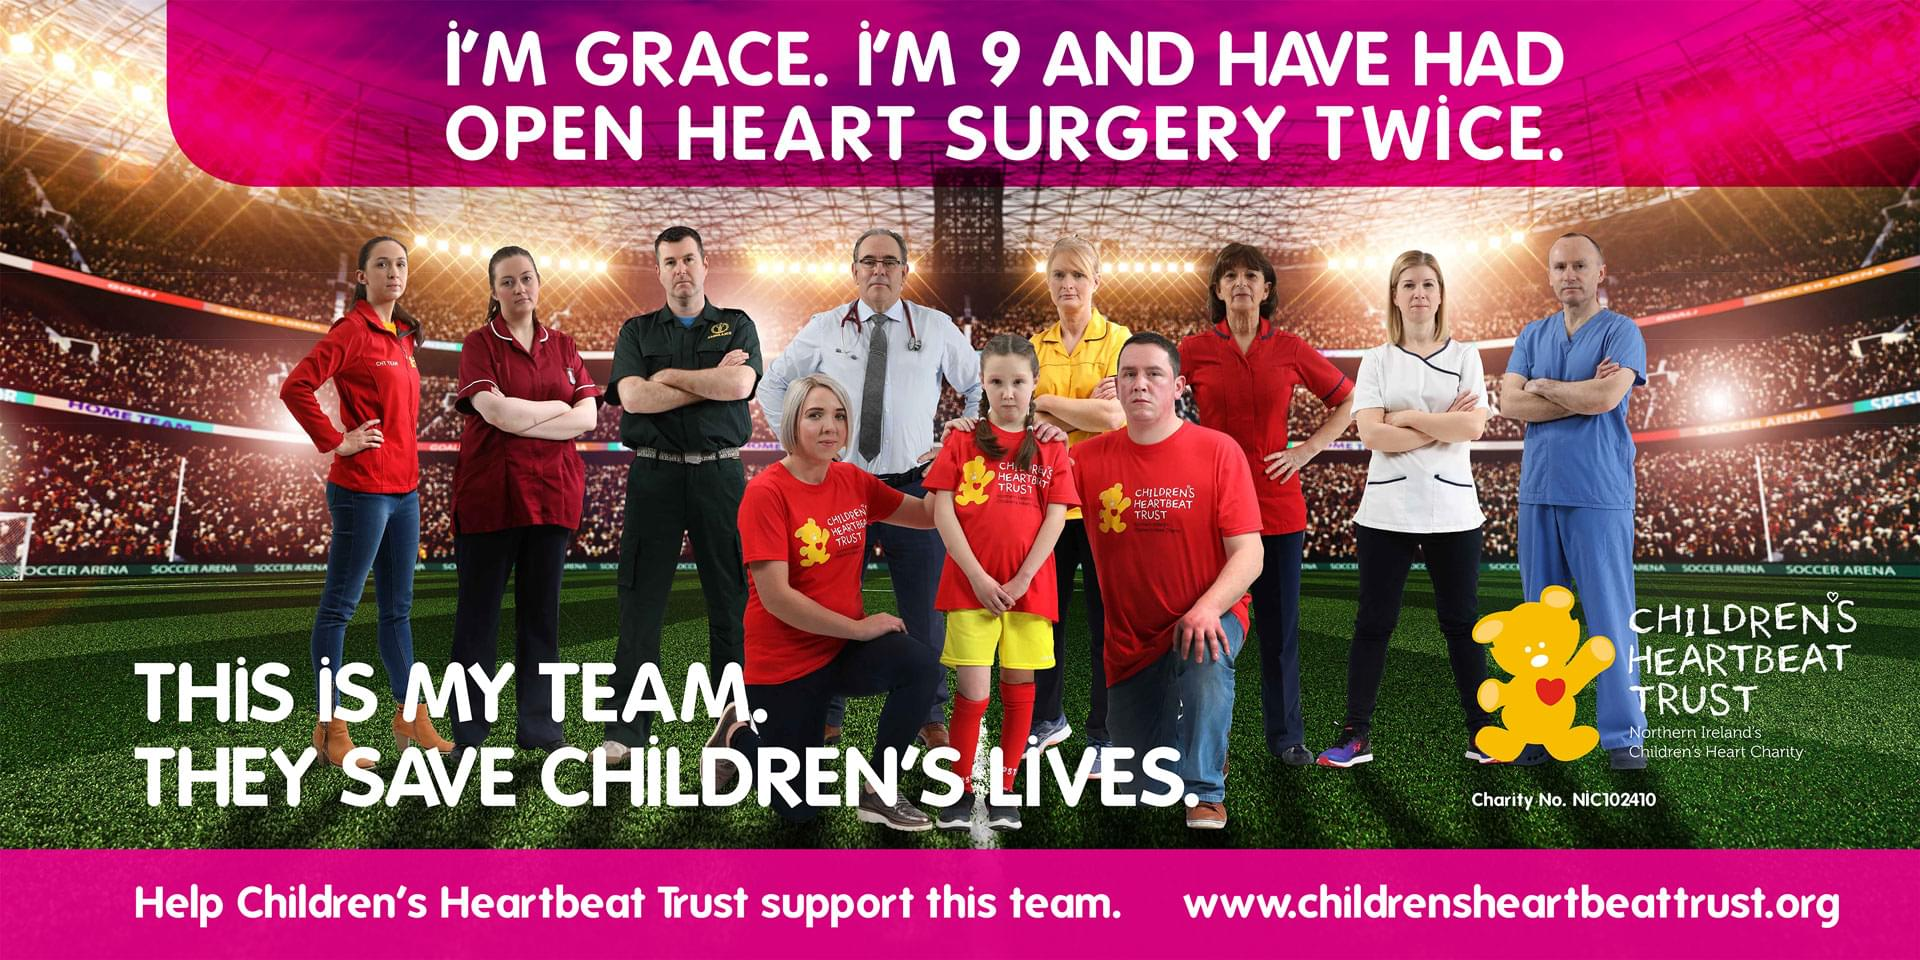 Help Children's Heartbeat trust support this team